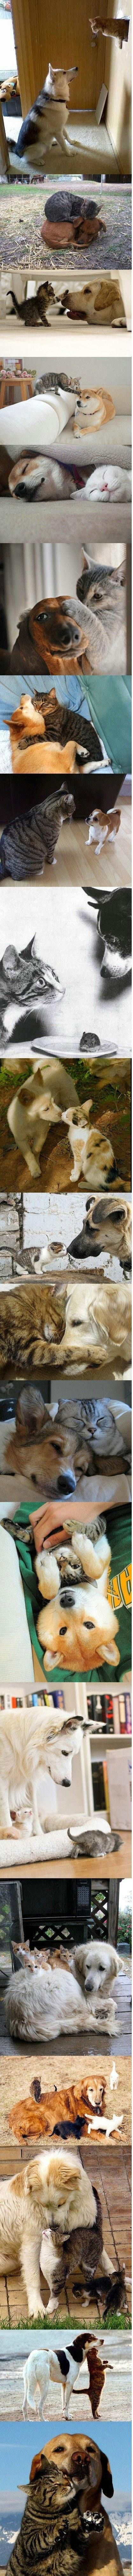 Cats & Dogs <3